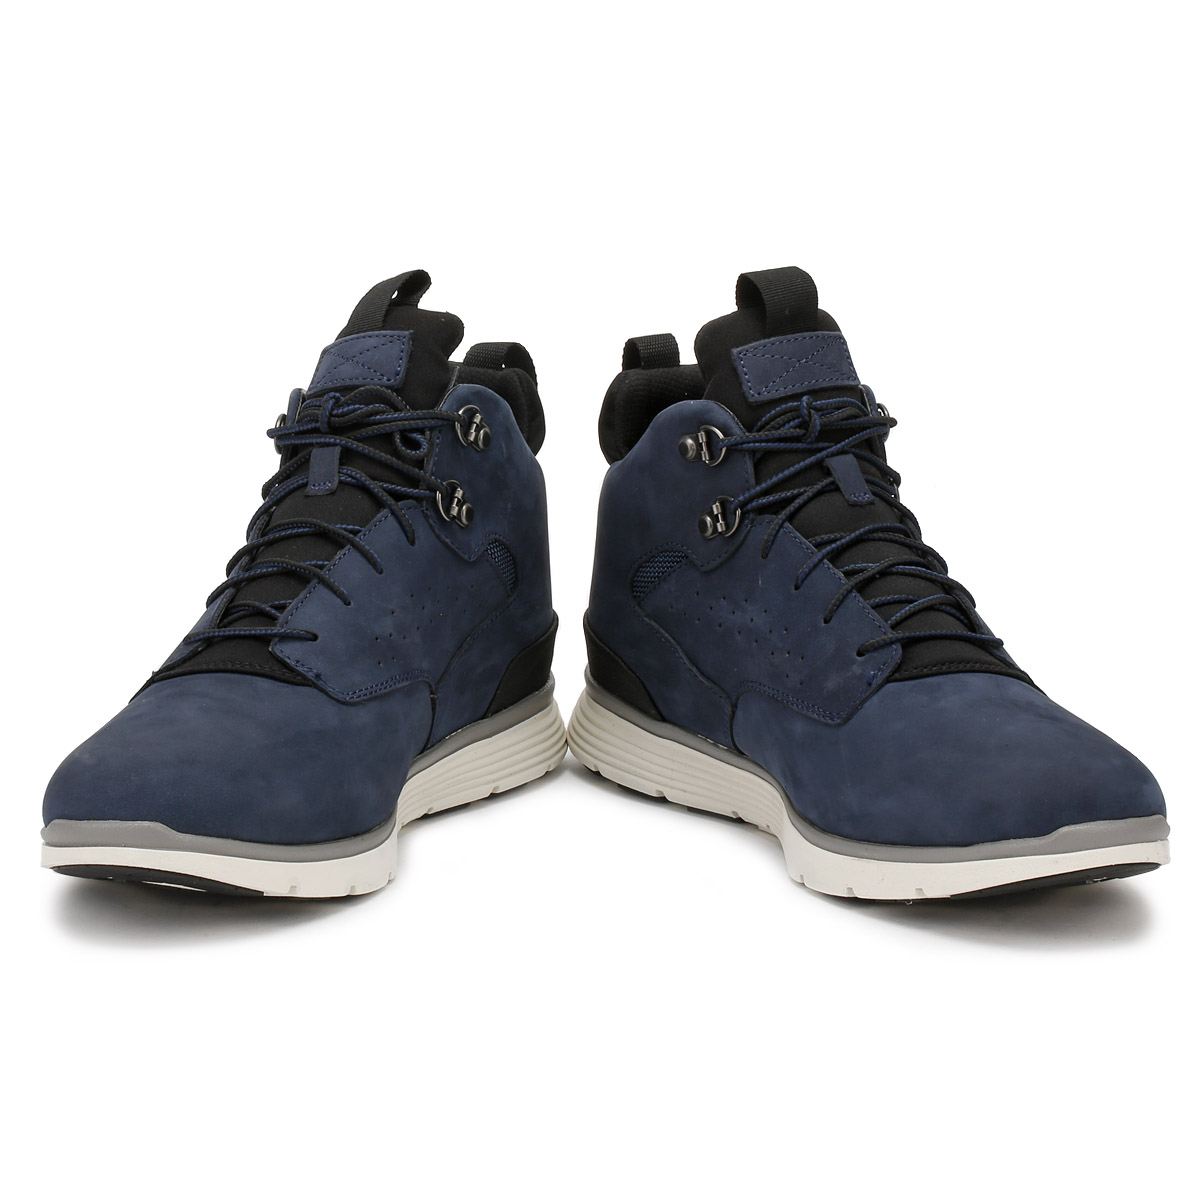 Jack Wills Shoes Mens